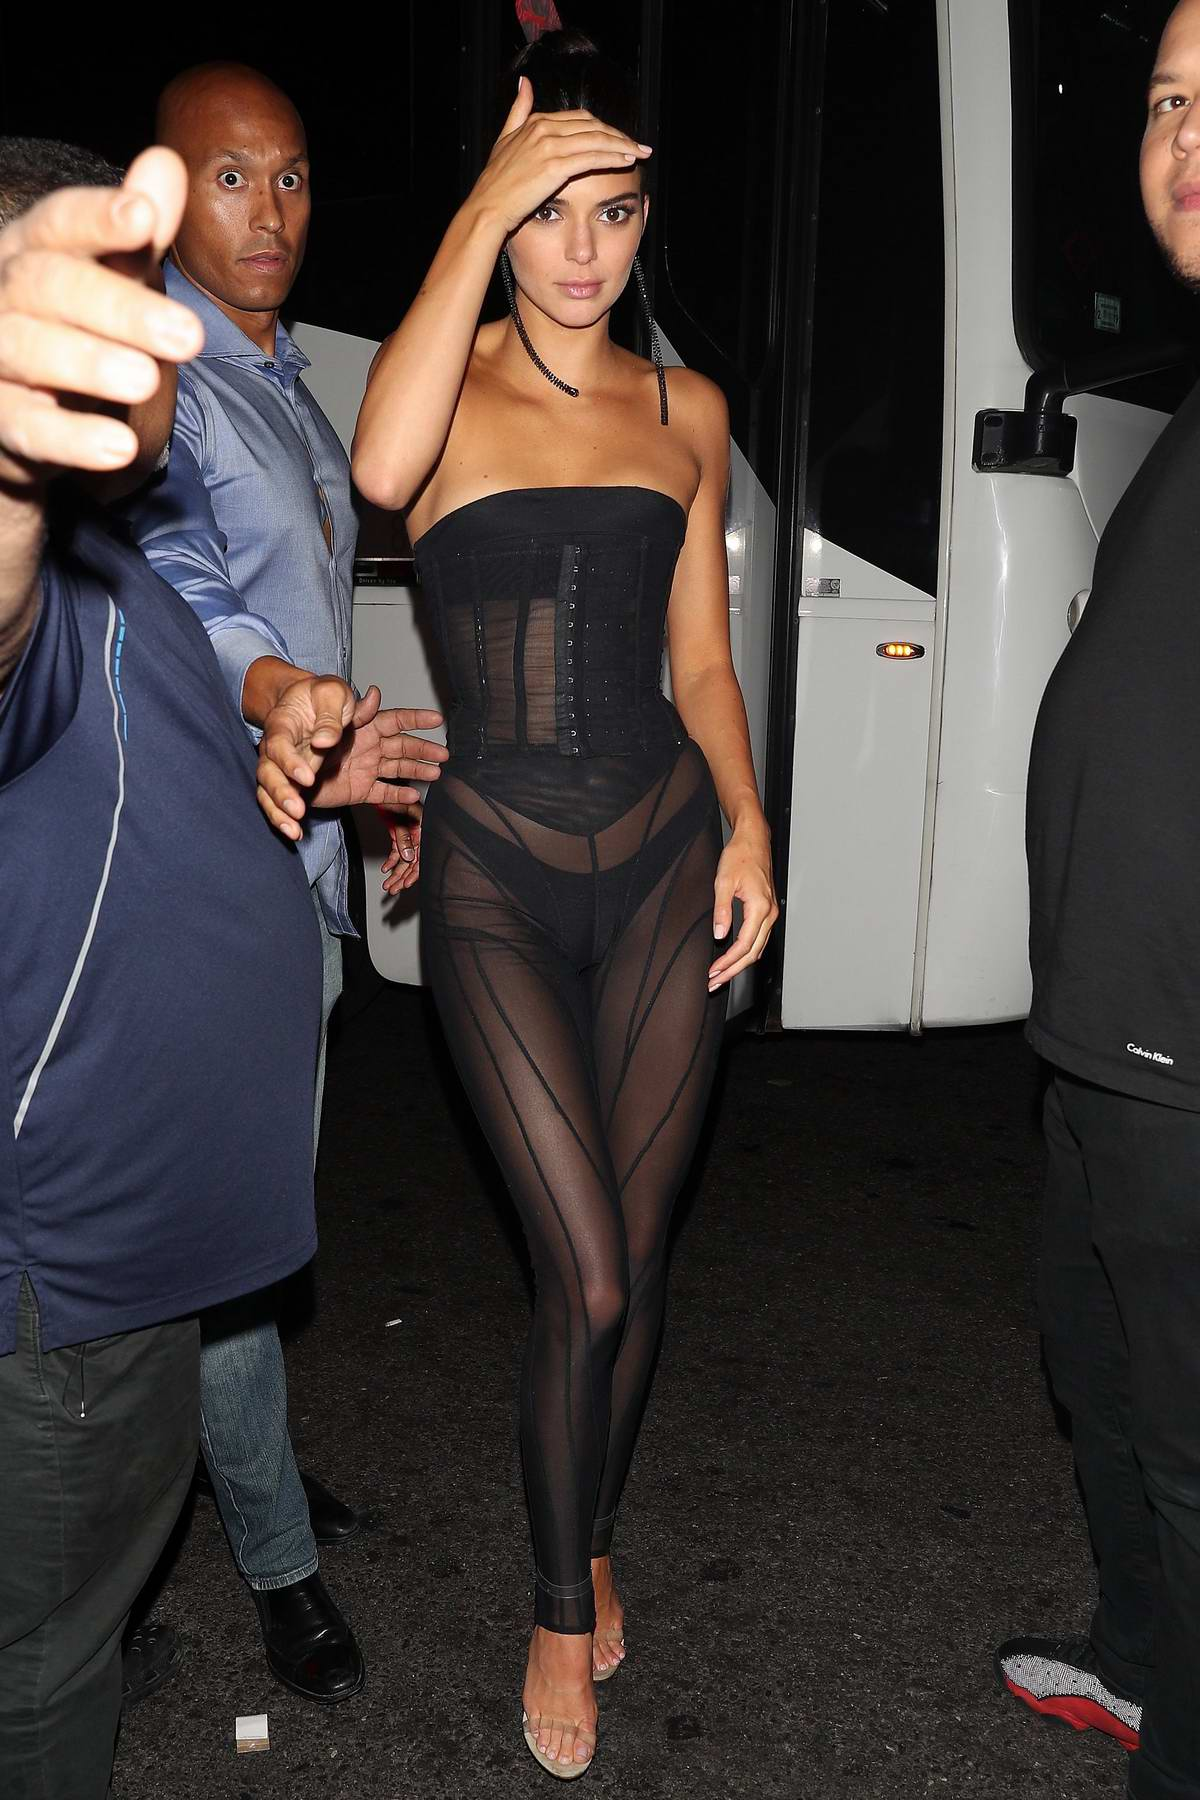 Kendall Jenner Wears A Black Sheer Outfit As She Arrives